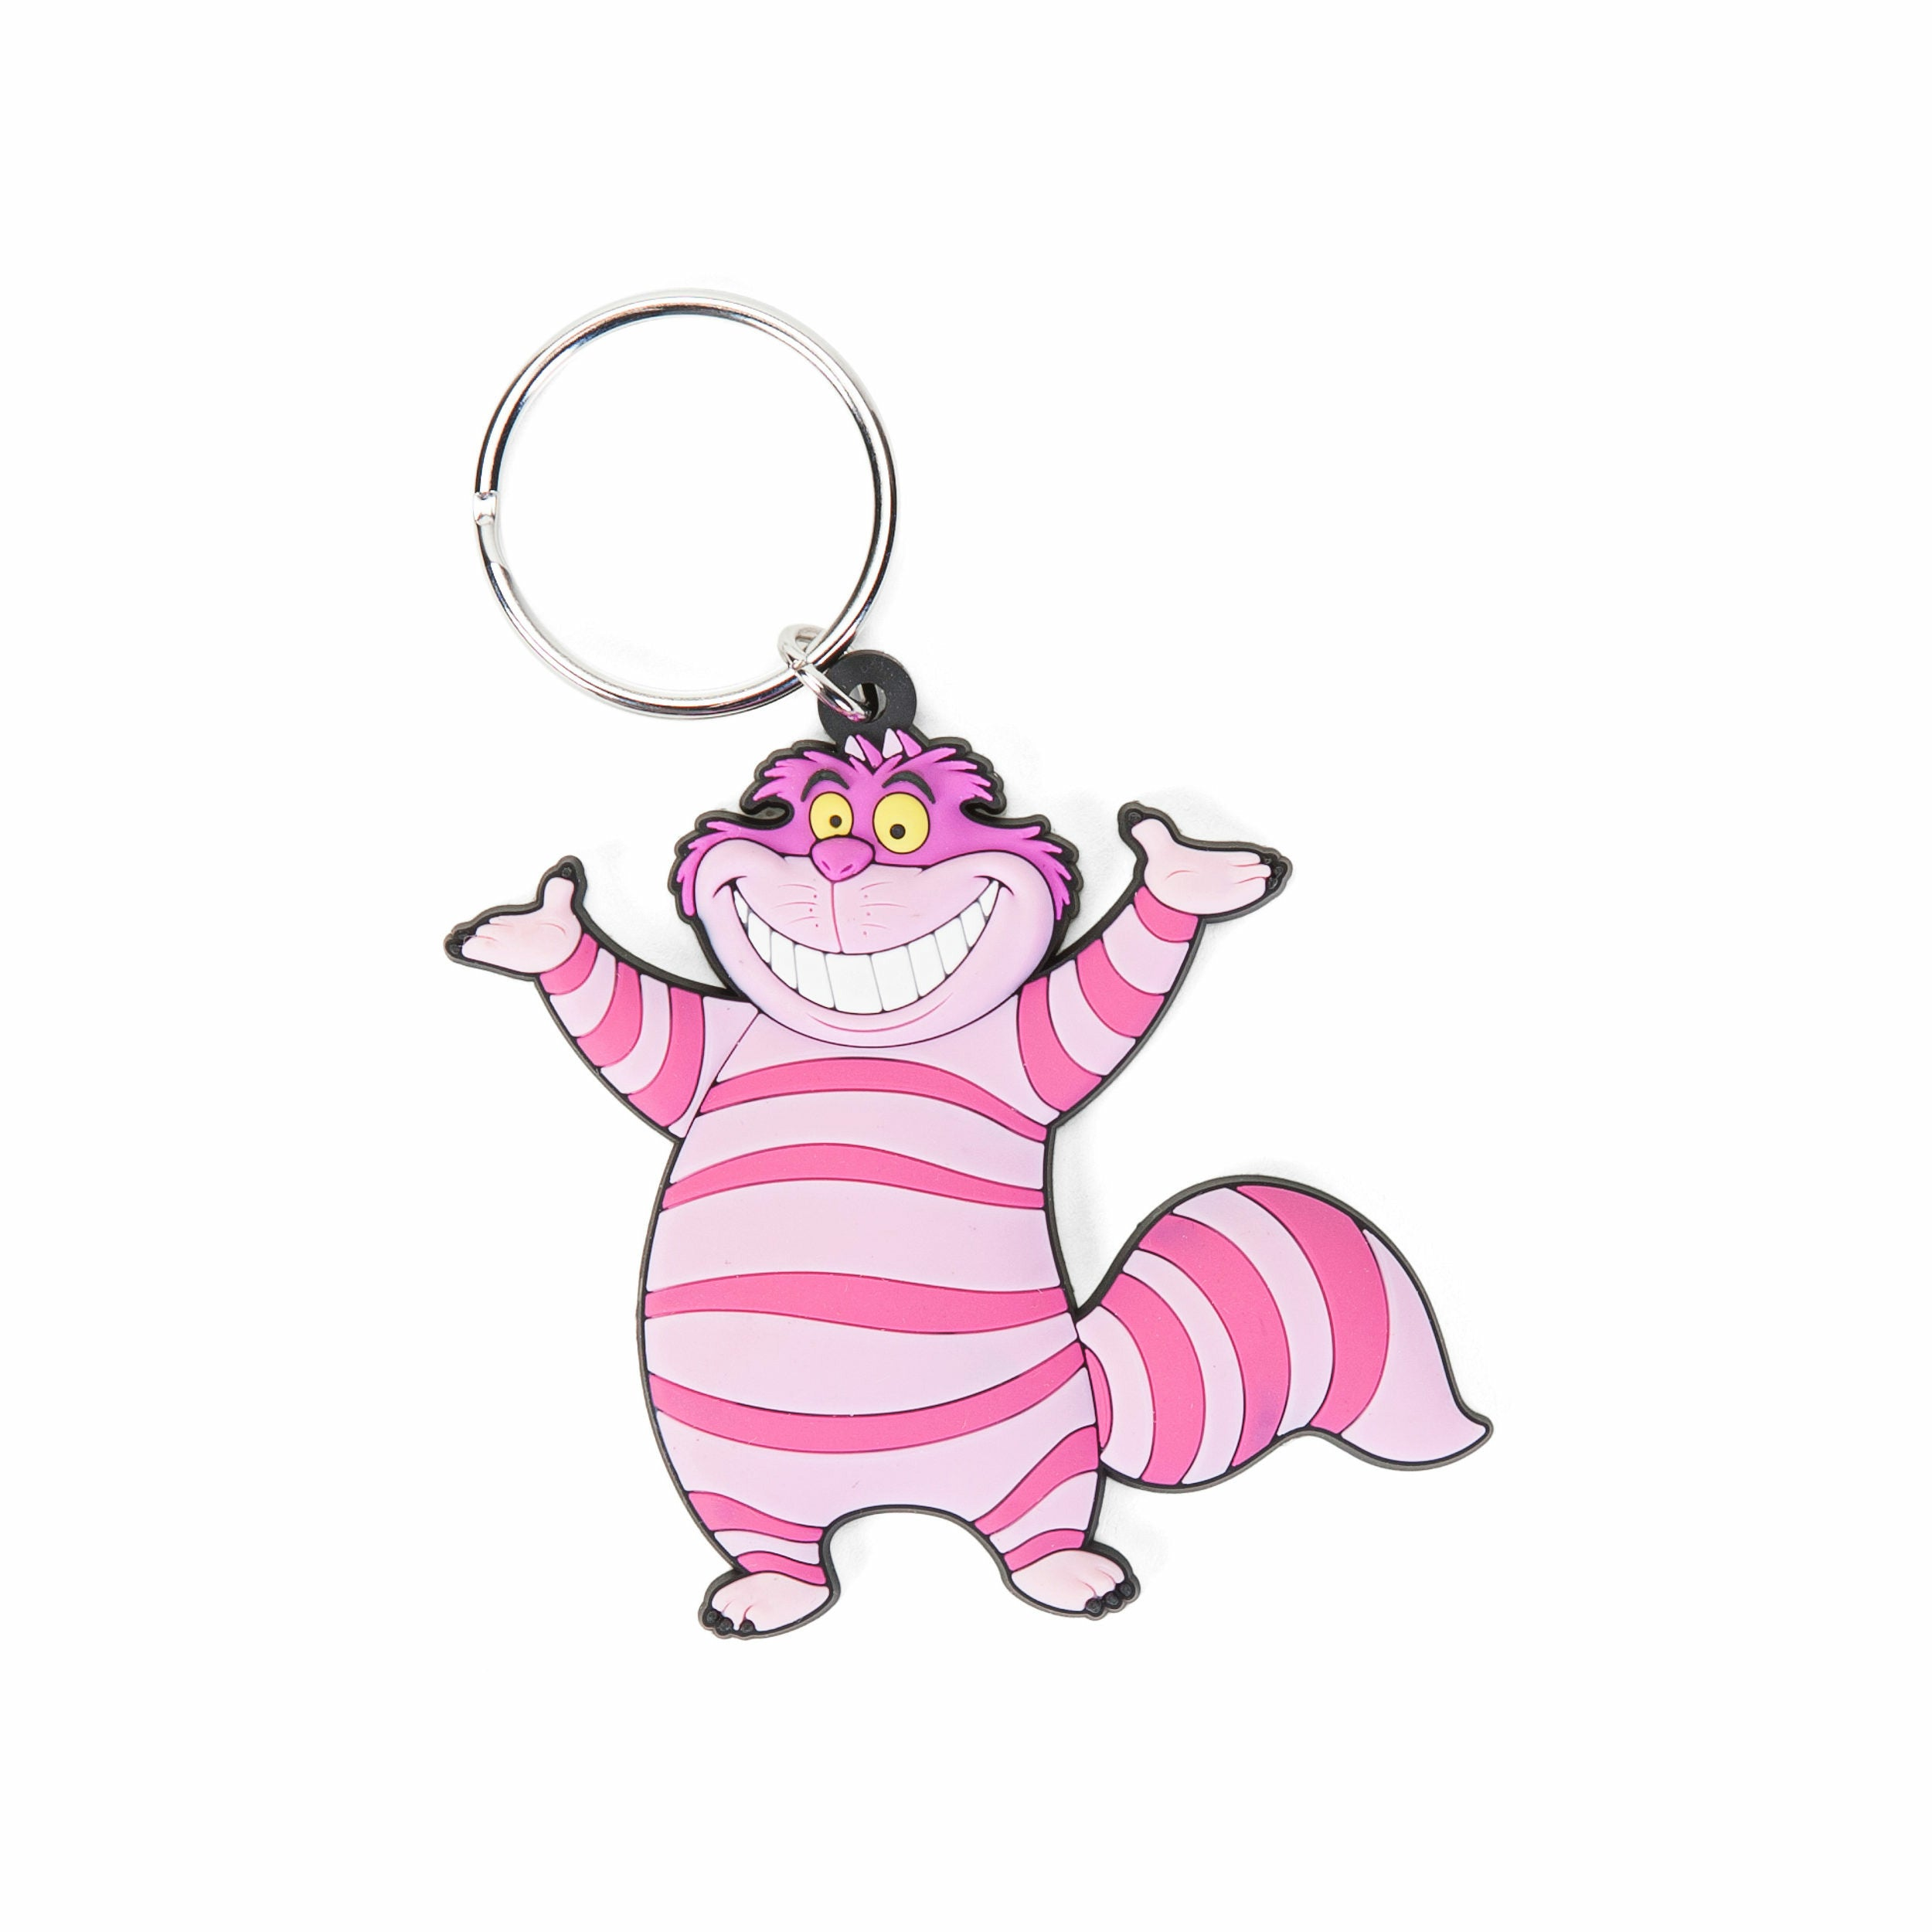 Alice in Wonderland Cheshire Cat Soft Touch PVC Keychain